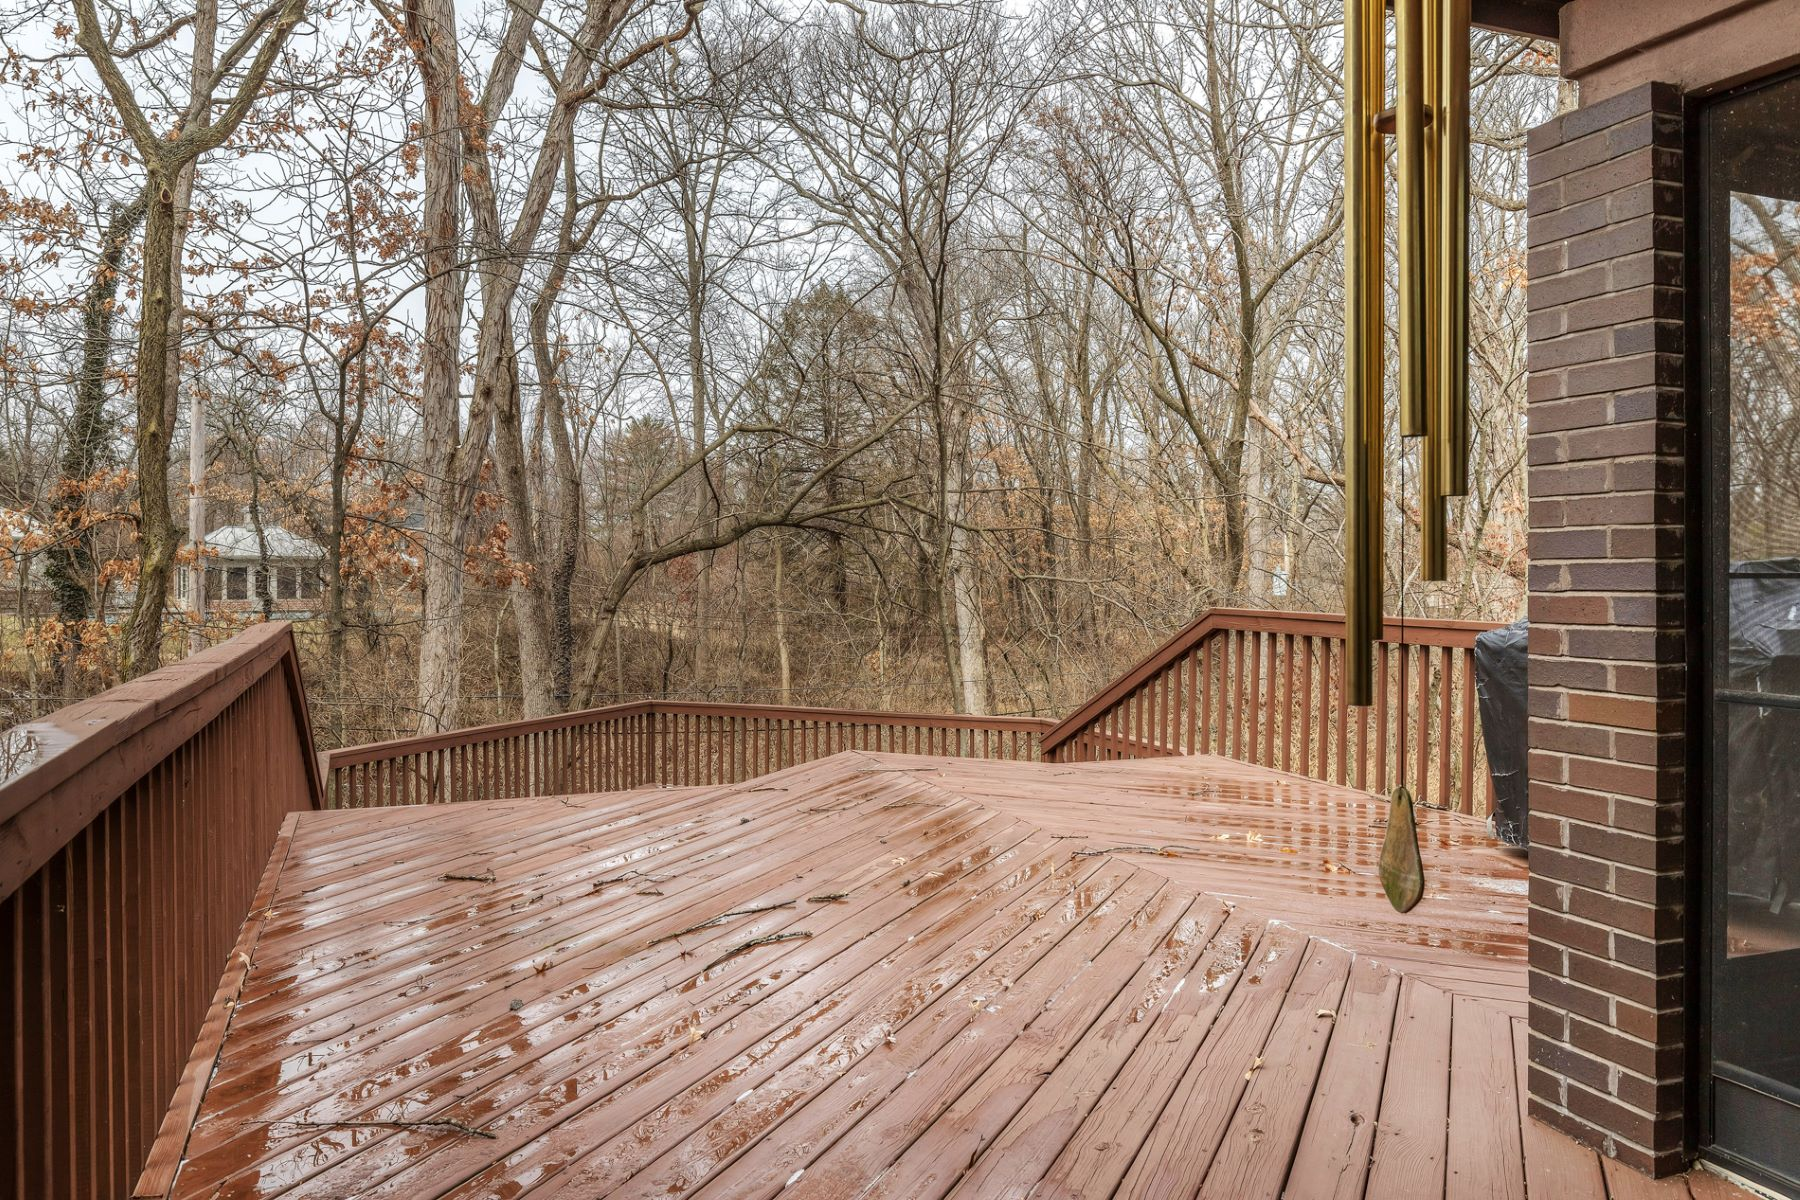 Additional photo for property listing at Conway Rd 11111 Conway Road Frontenac, Missouri 63131 United States